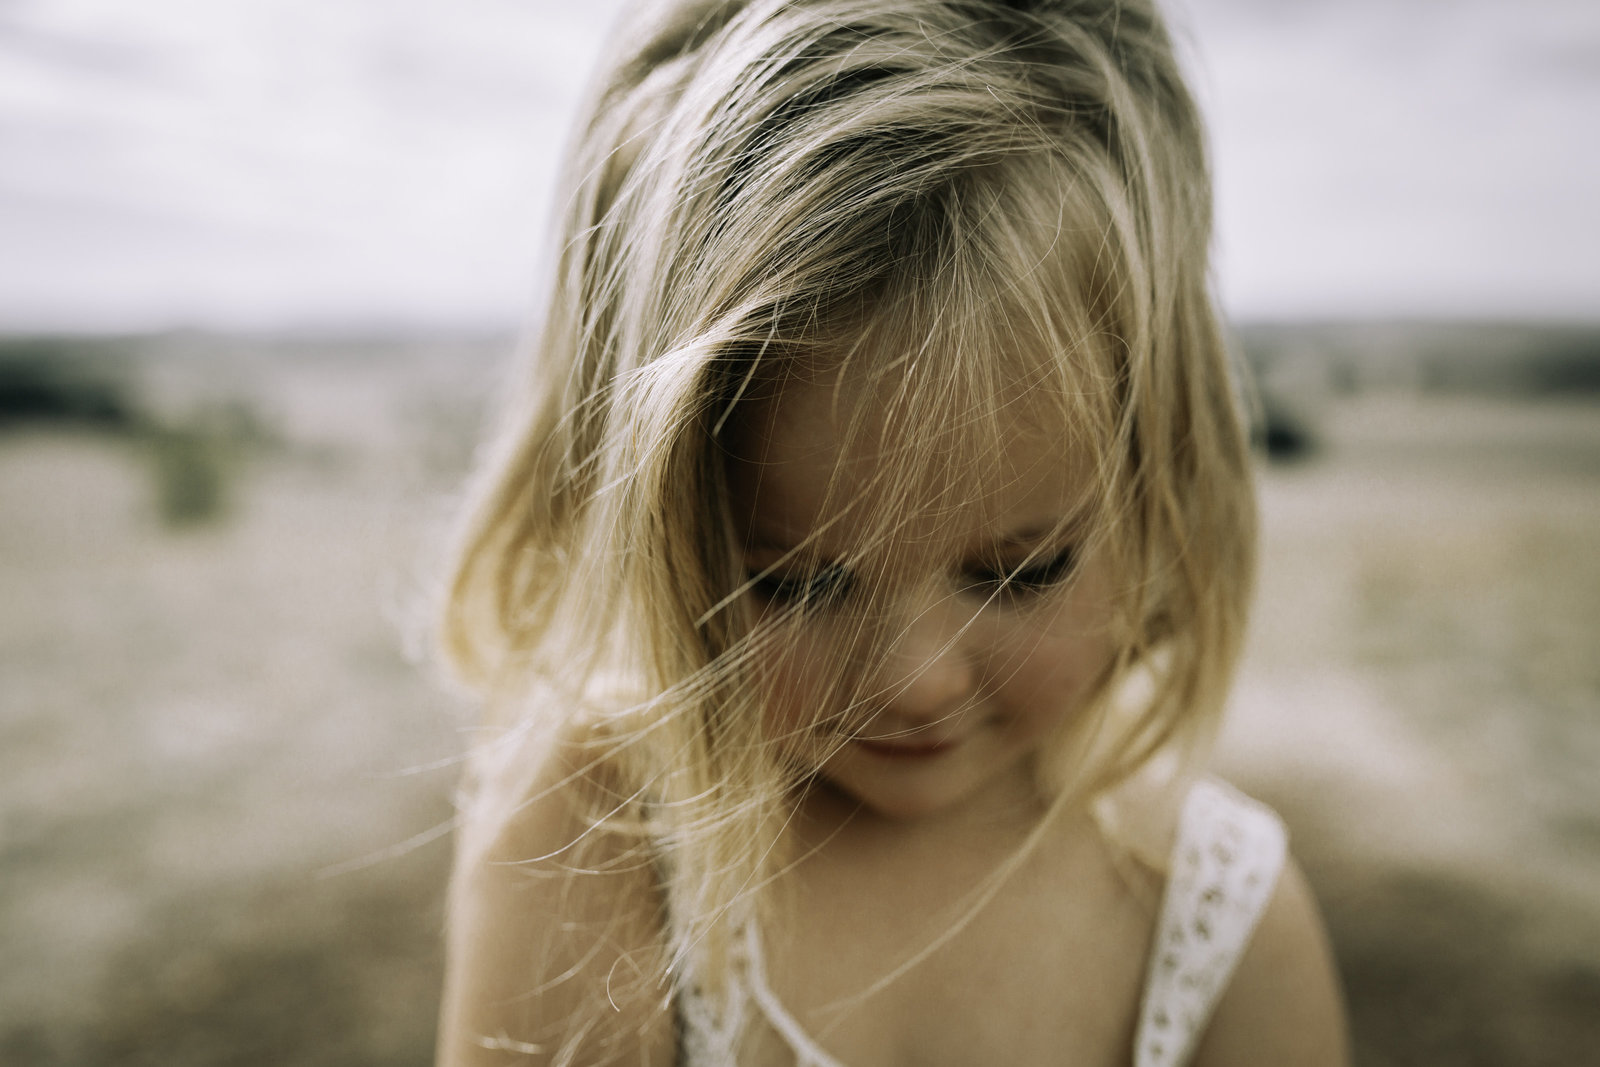 Little girl with blonde hair looking down with long lashes. Wind in hair in open field. Melbourne Family Photographer Sapphire and Stone Photography